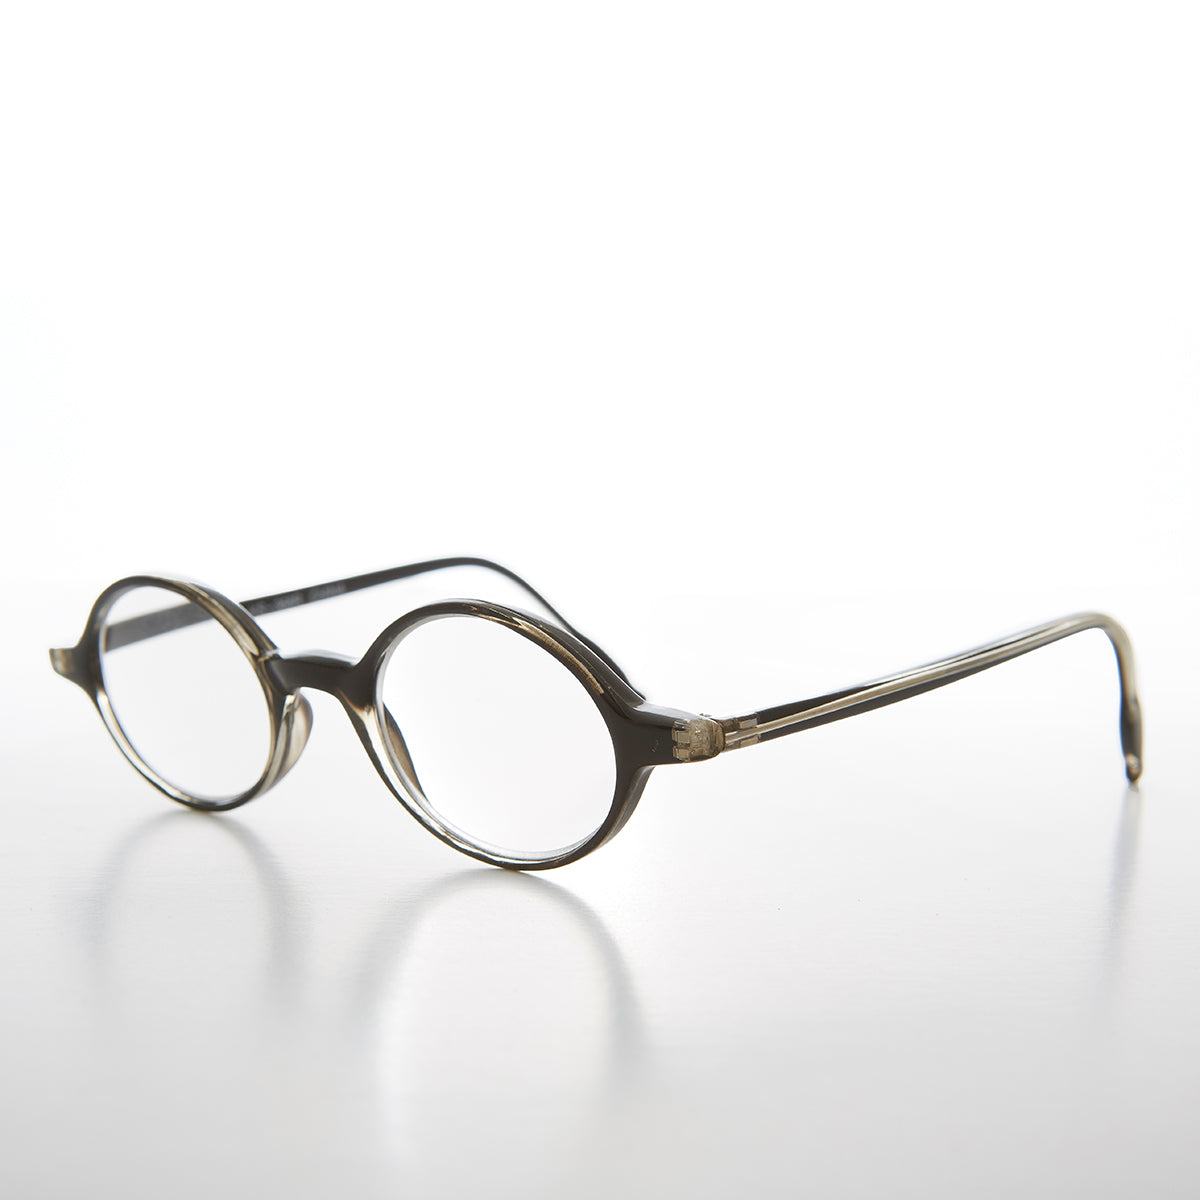 Small Black Oval Reading Glasses